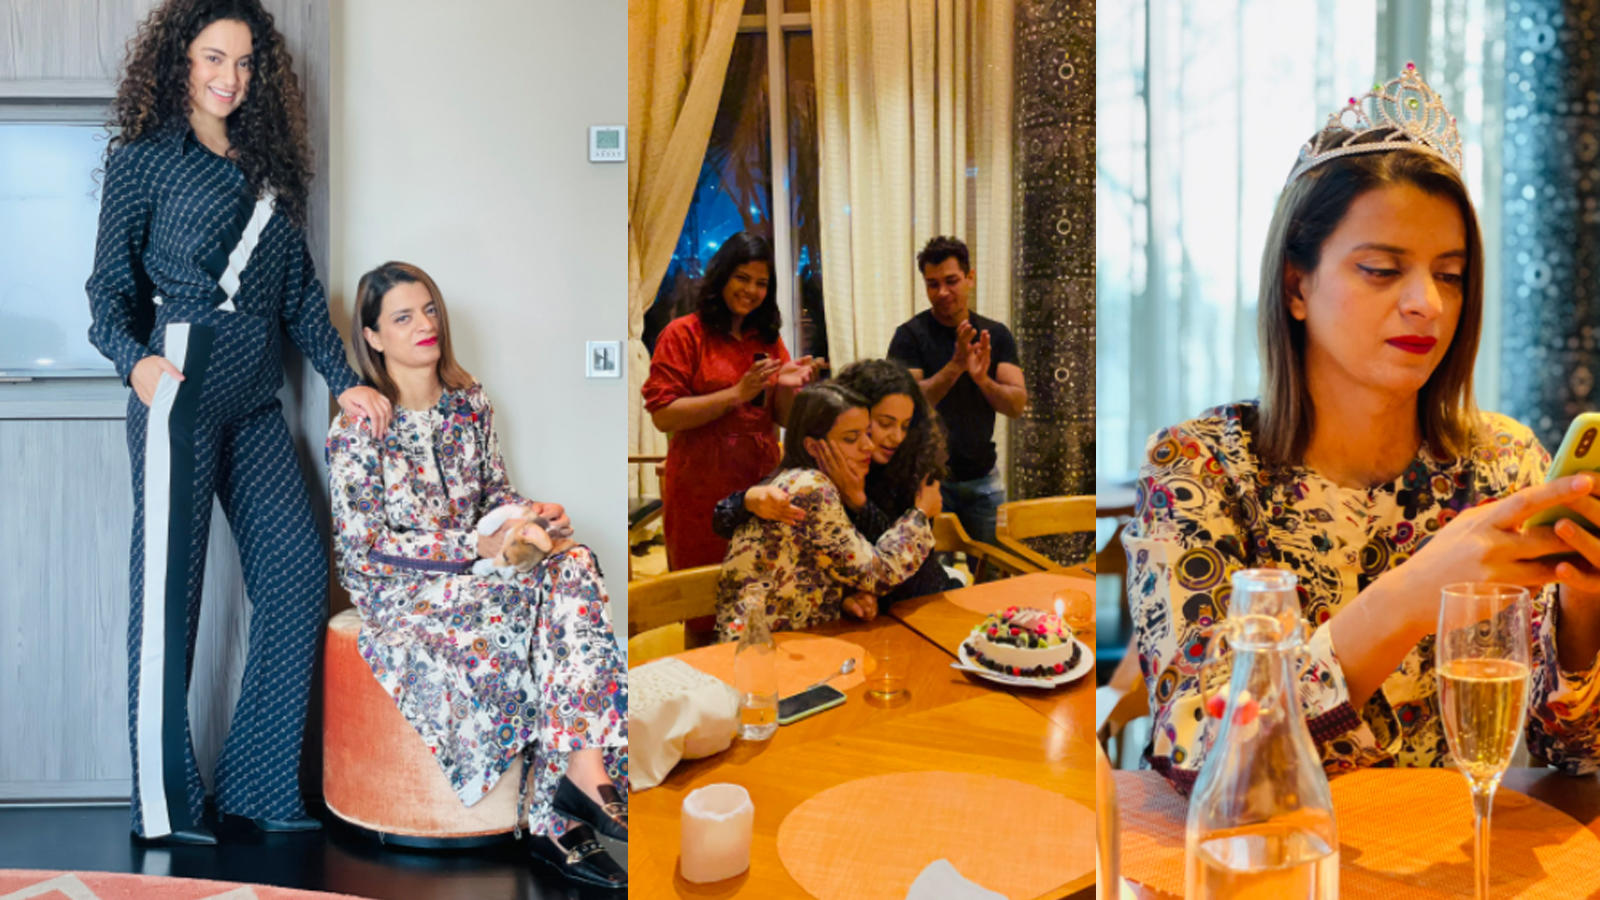 kangana-ranaut-shares-unseen-pictures-from-sister-rangoli-chandels-birthday-celebrations